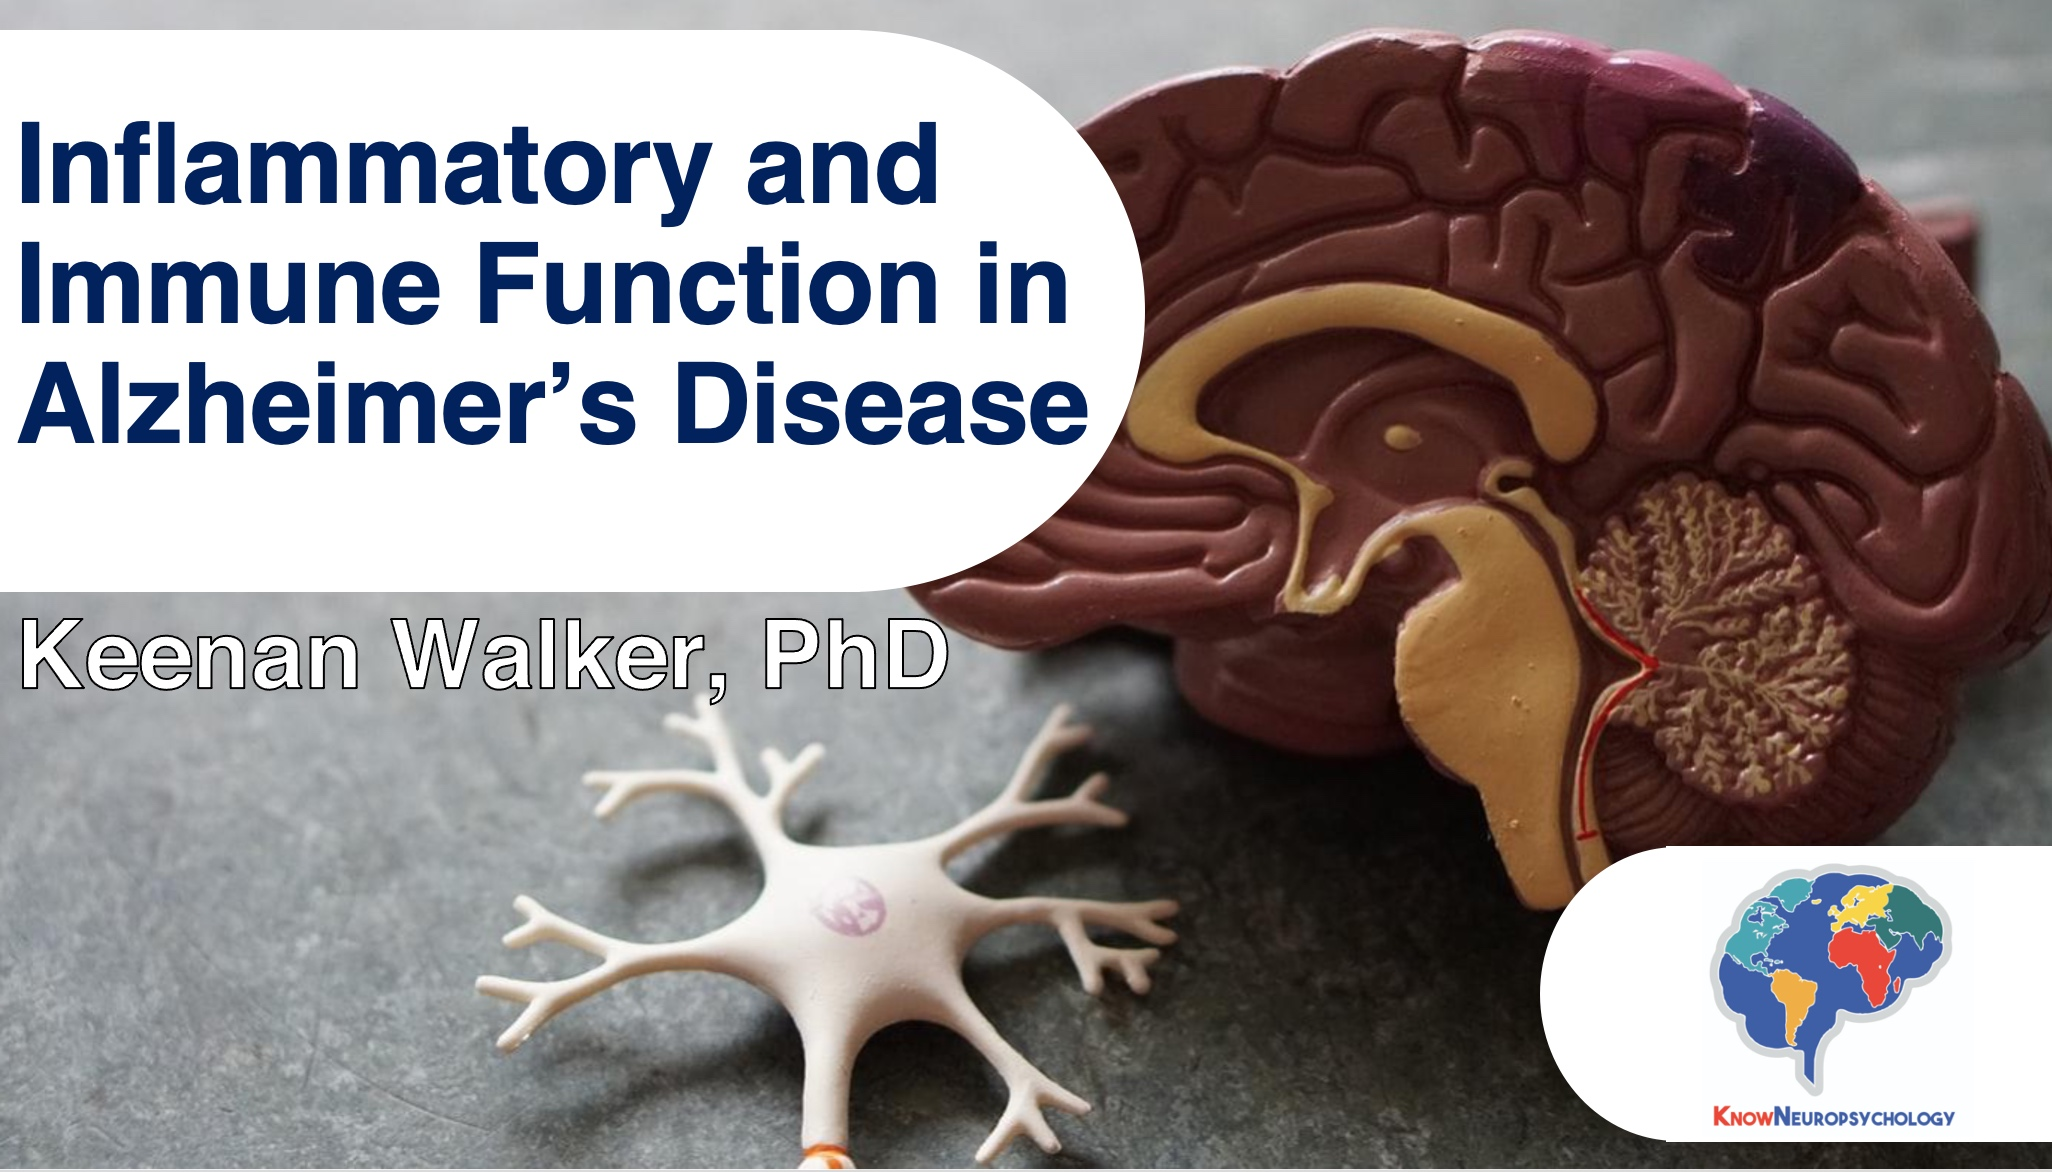 Inflammation and immune functioning in Alzheimer's disease by Dr. Keenan Walker